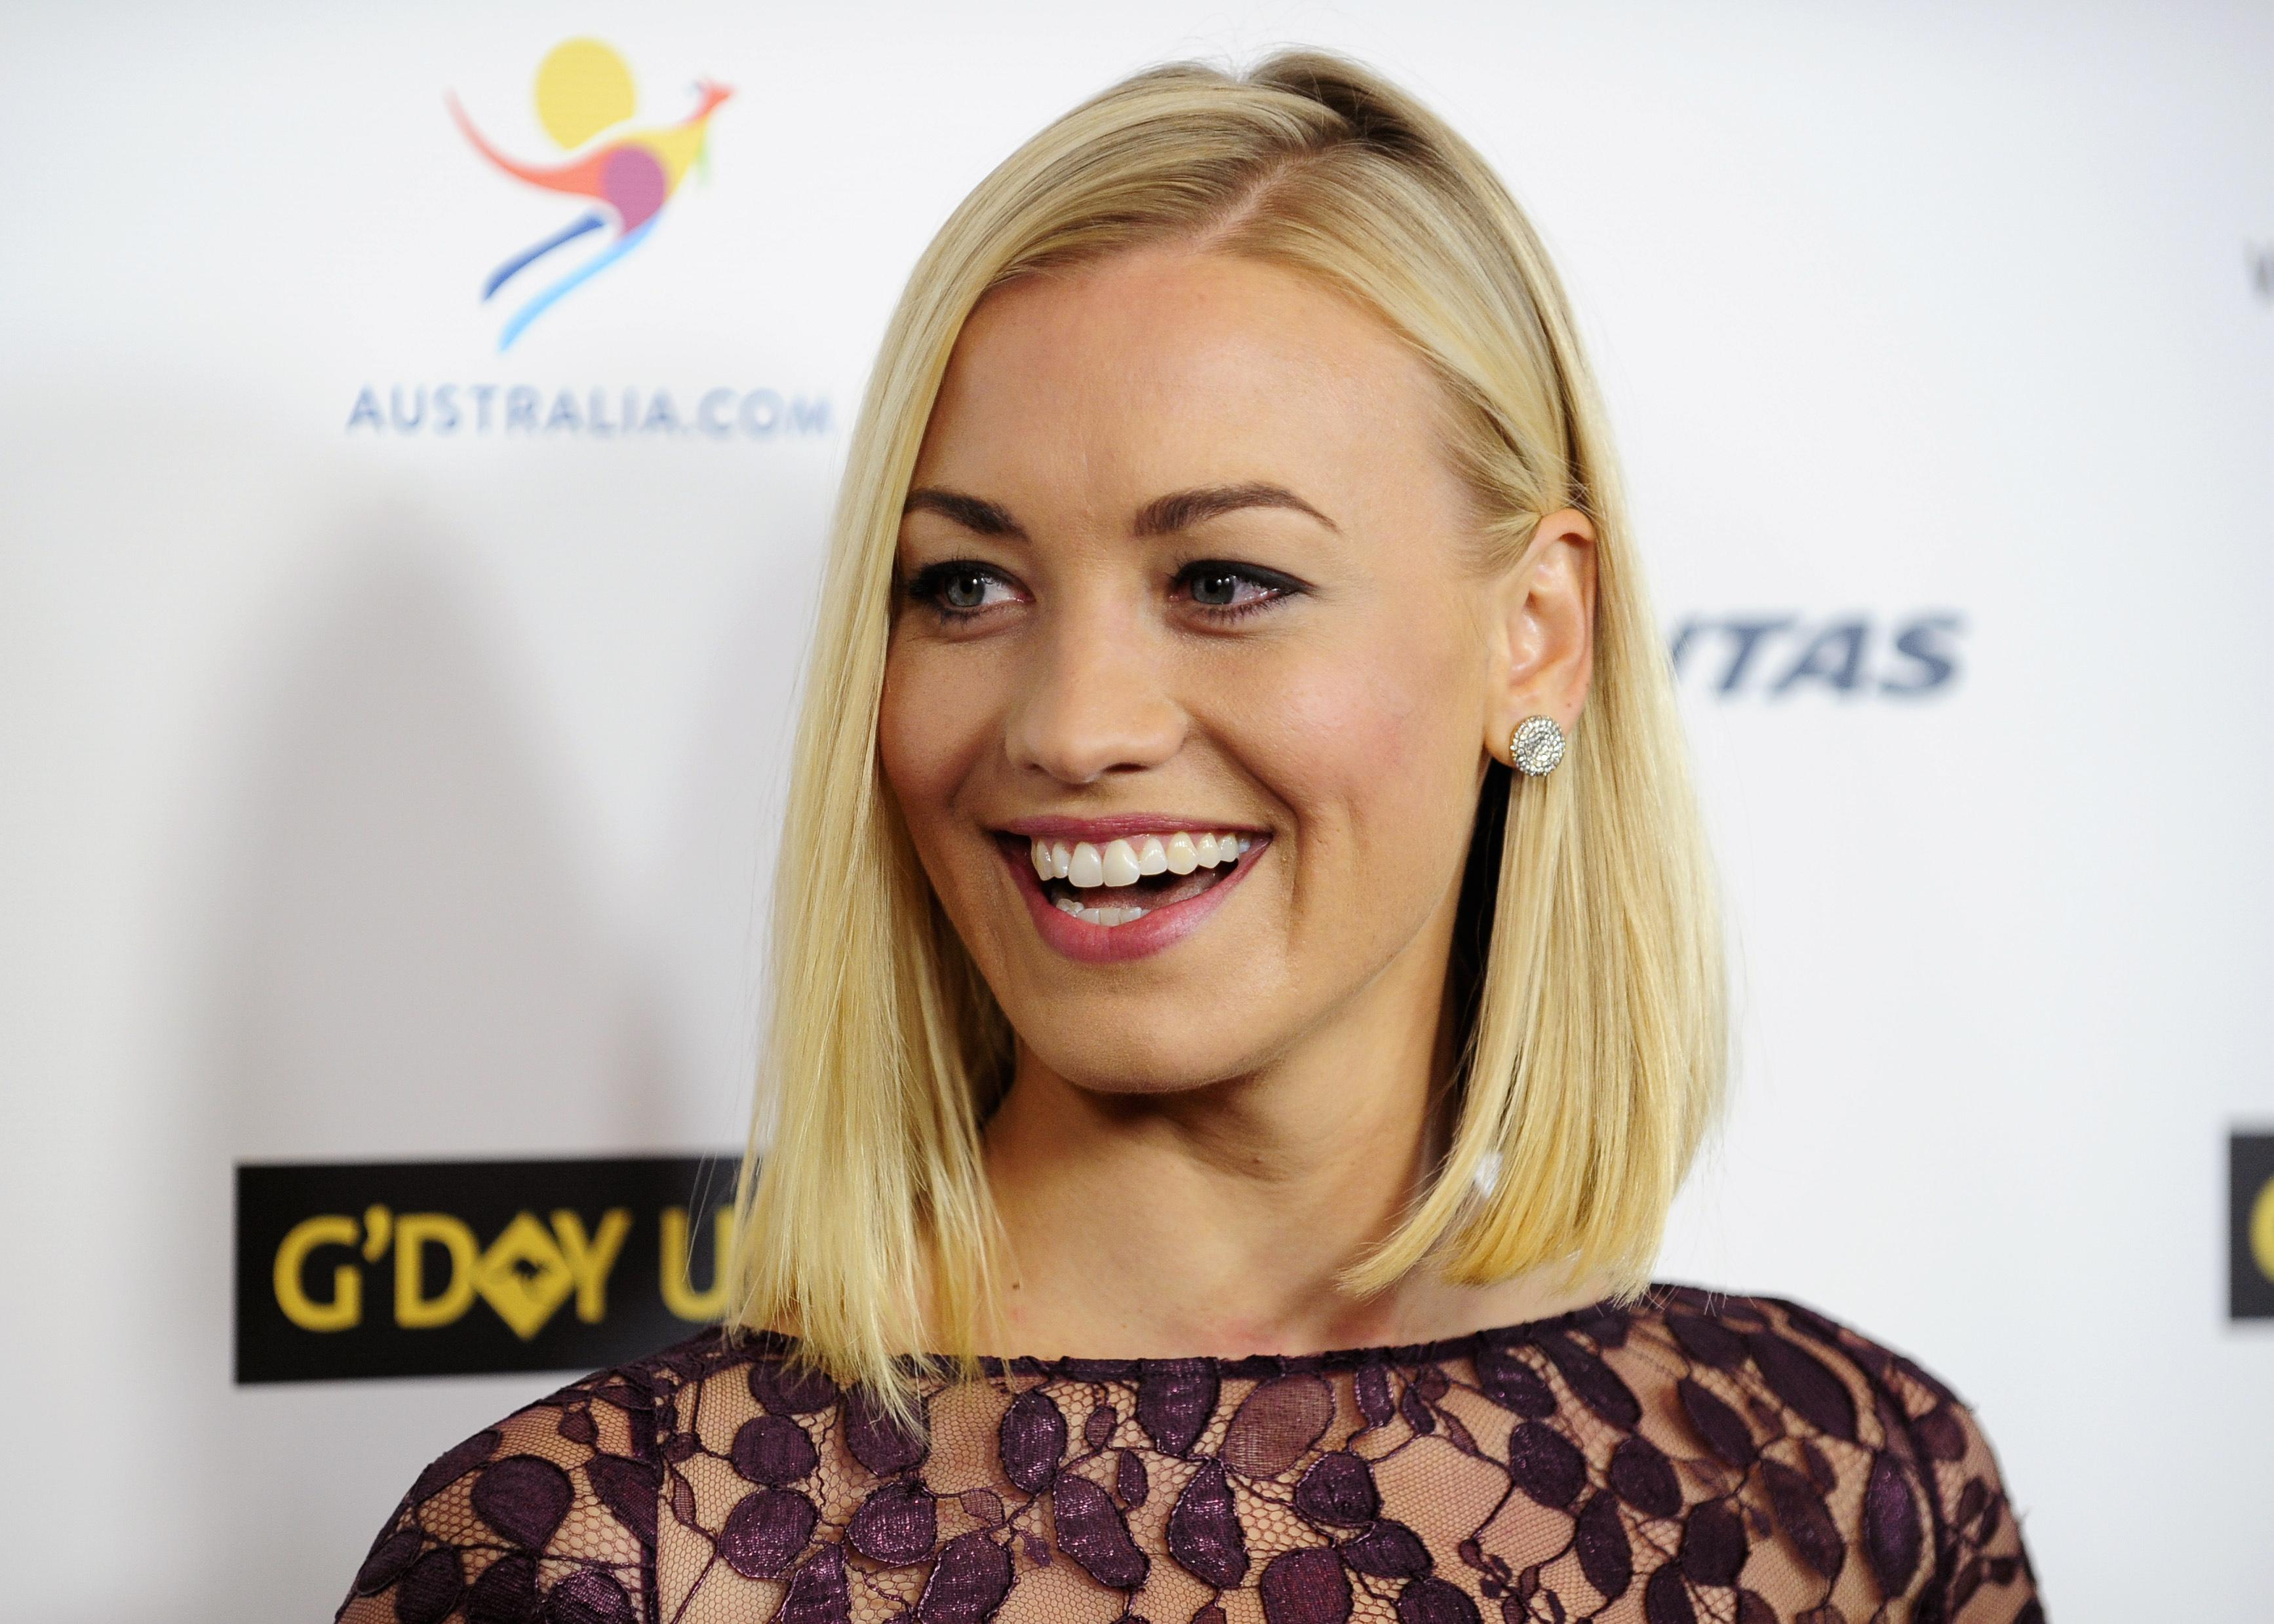 Australian actress Strahovski arrives during the G'Day USA Black Tie Gala in Los Angeles, California